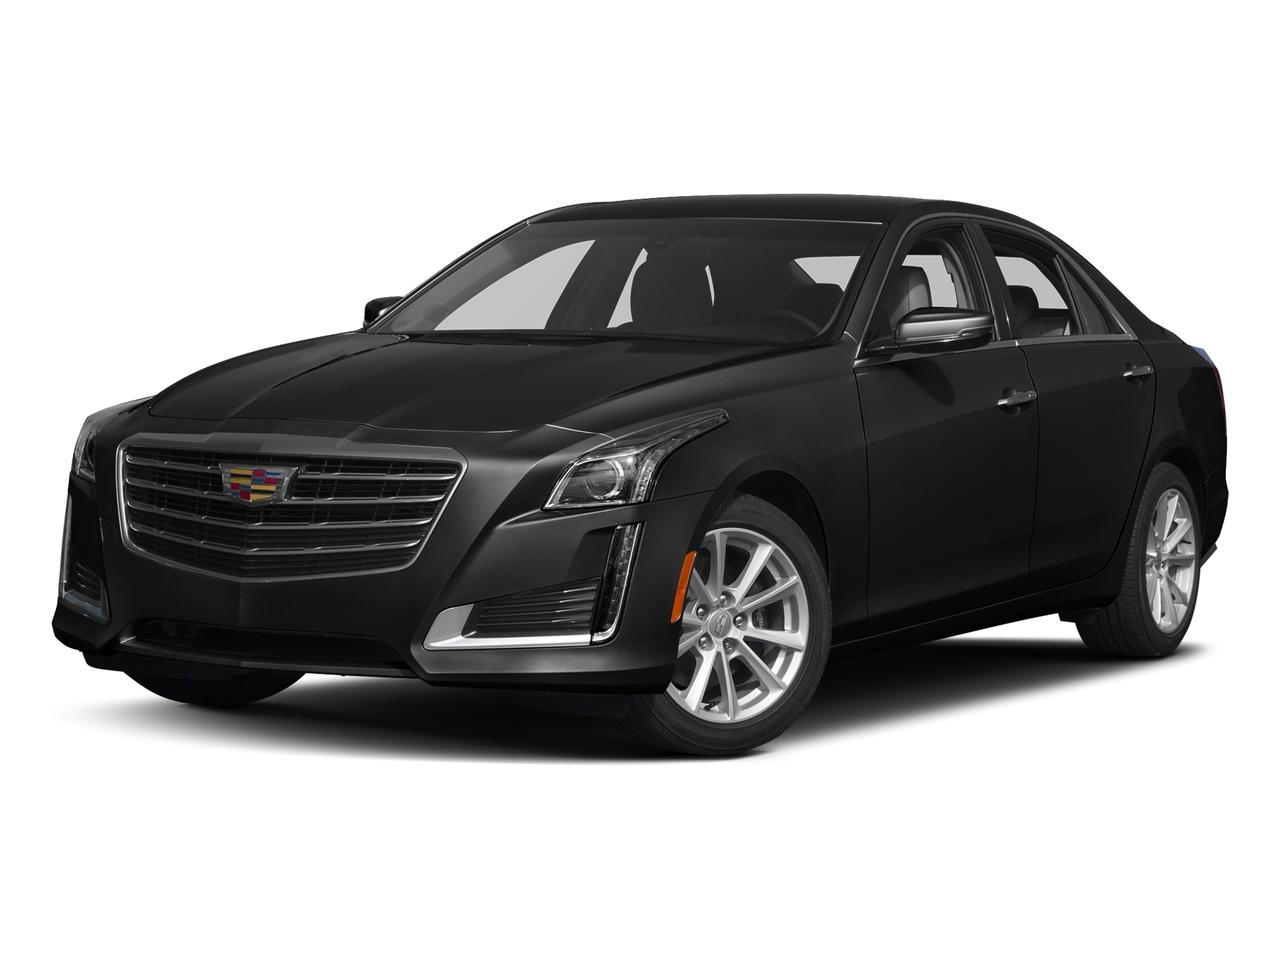 2017 Cadillac CTS Sedan Vehicle Photo in Westlake, OH 44145